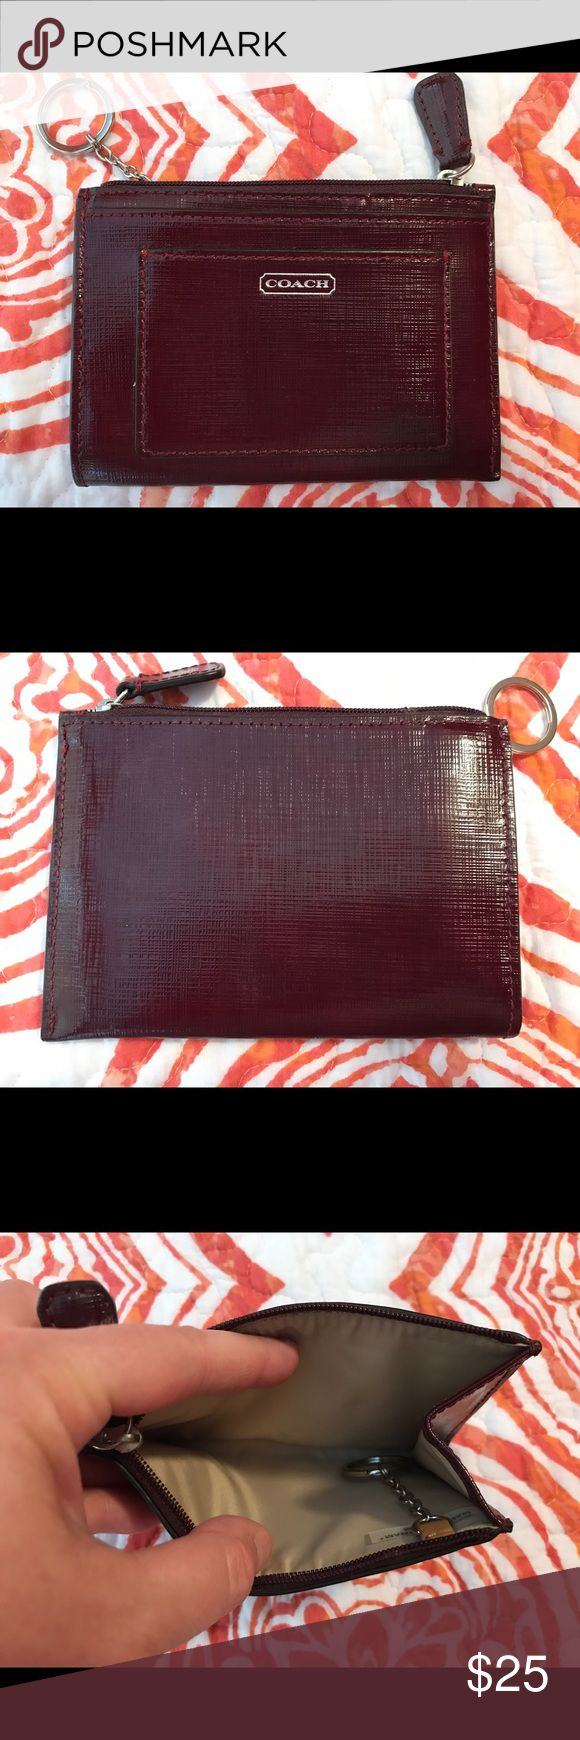 Coach ID/Money Case With Keyring - New Beautiful Merlot colored ID/Money case - never used! Great addition to your handbag! Coach Accessories Key & Card Holders